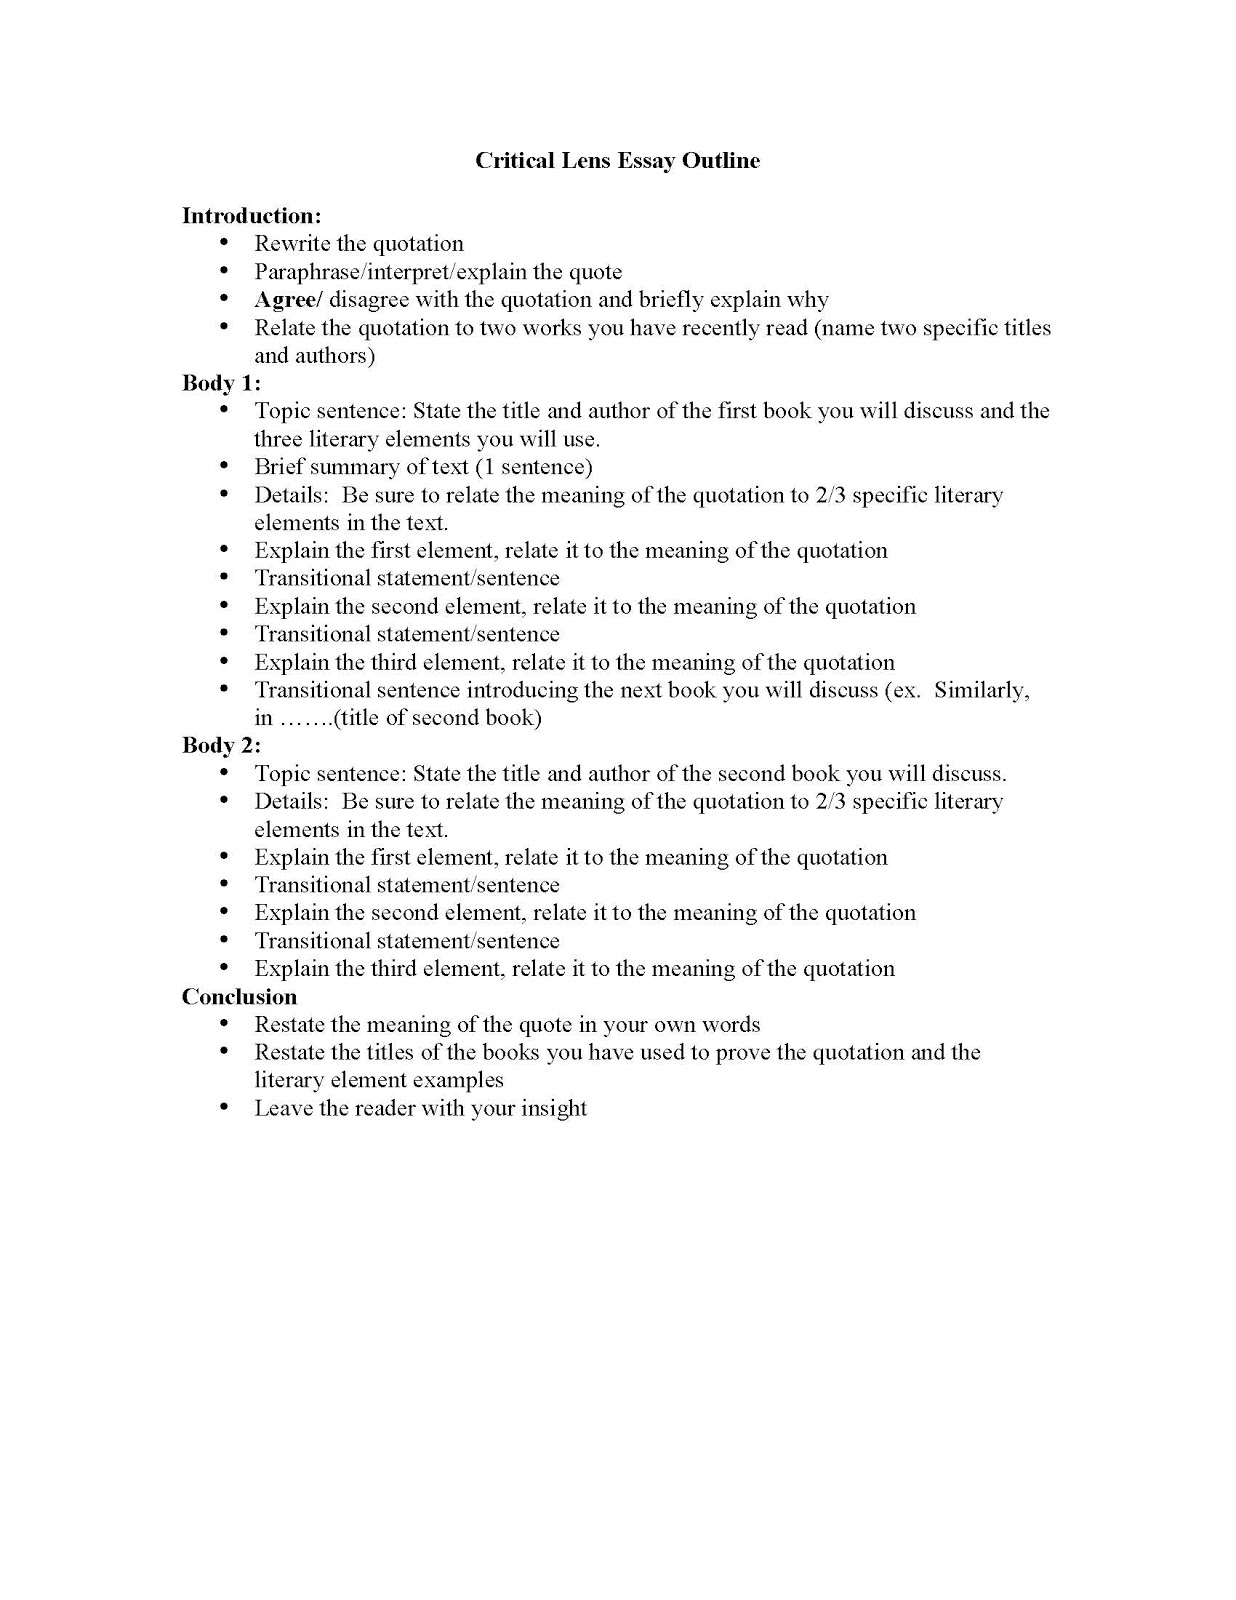 009 Descriptive Essay Outline Critical20lens20essay20outline20and20literay20elements Page 1 Outstanding Template Pdf About A Person Full